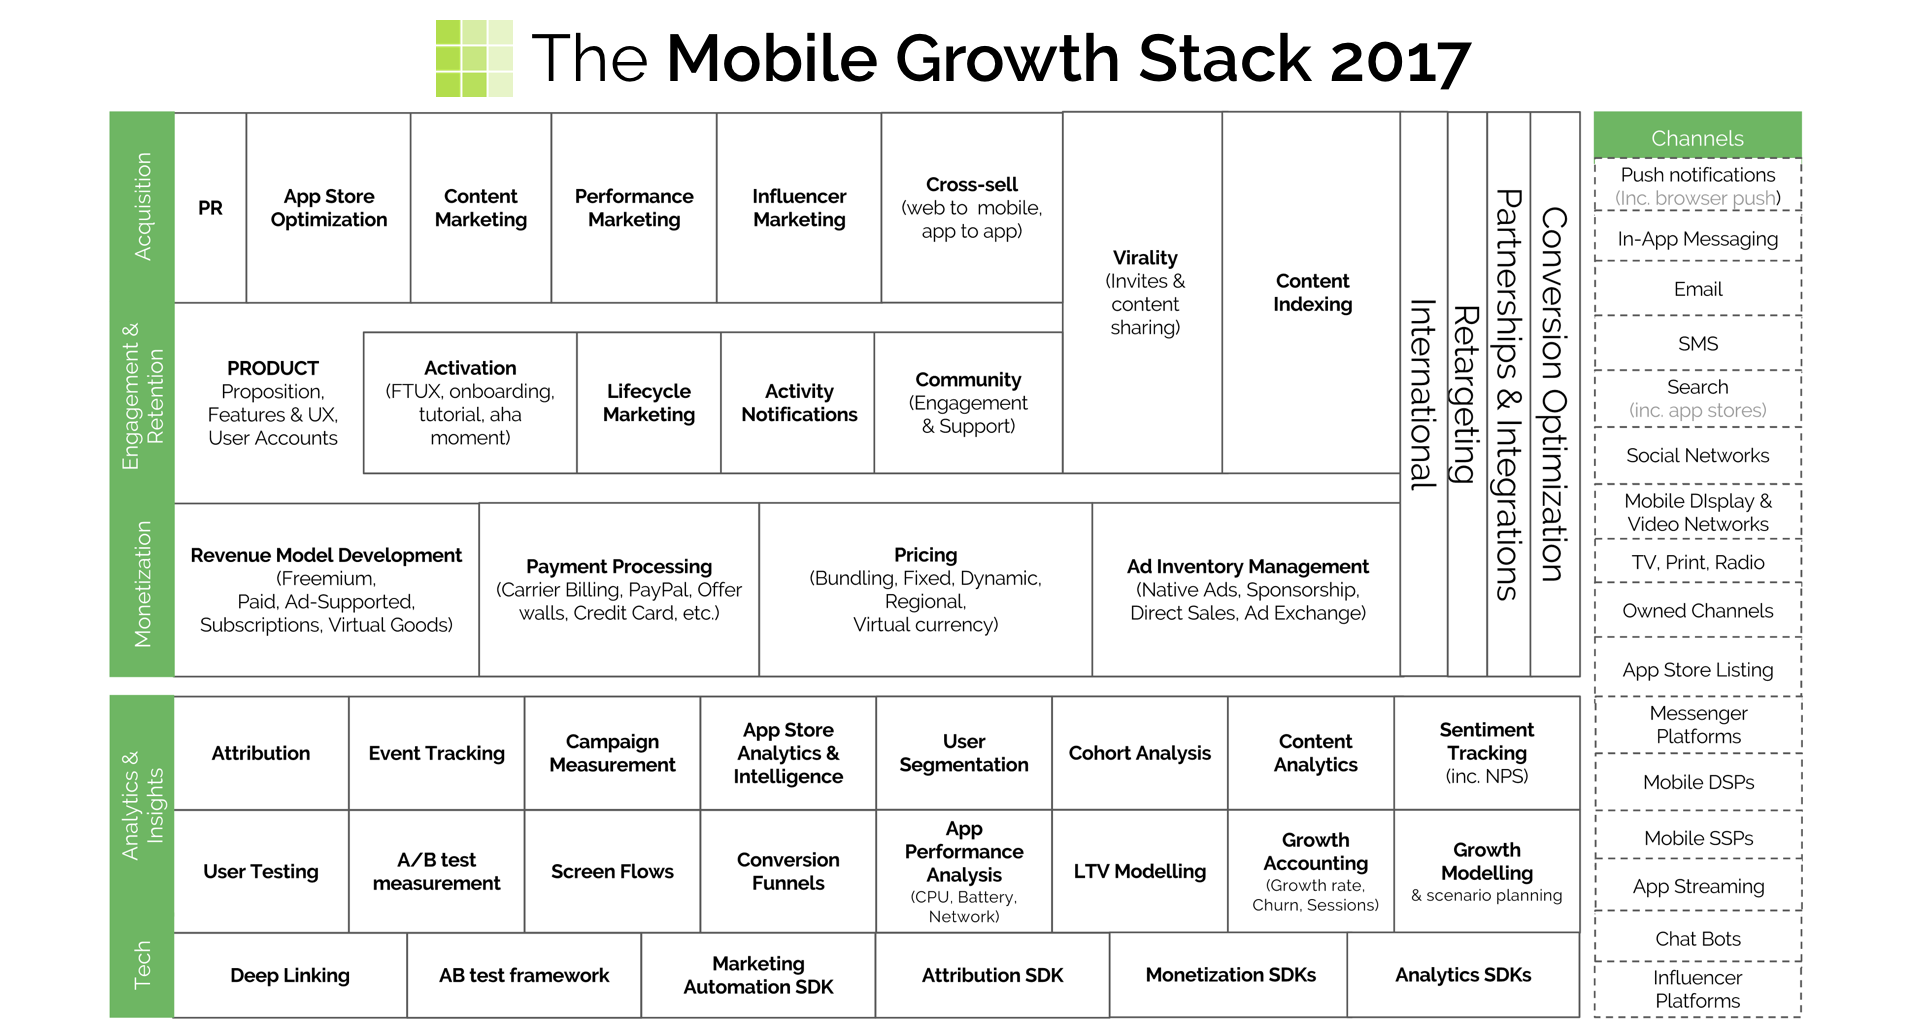 mobile-growth-stack-2017-babysitter-app